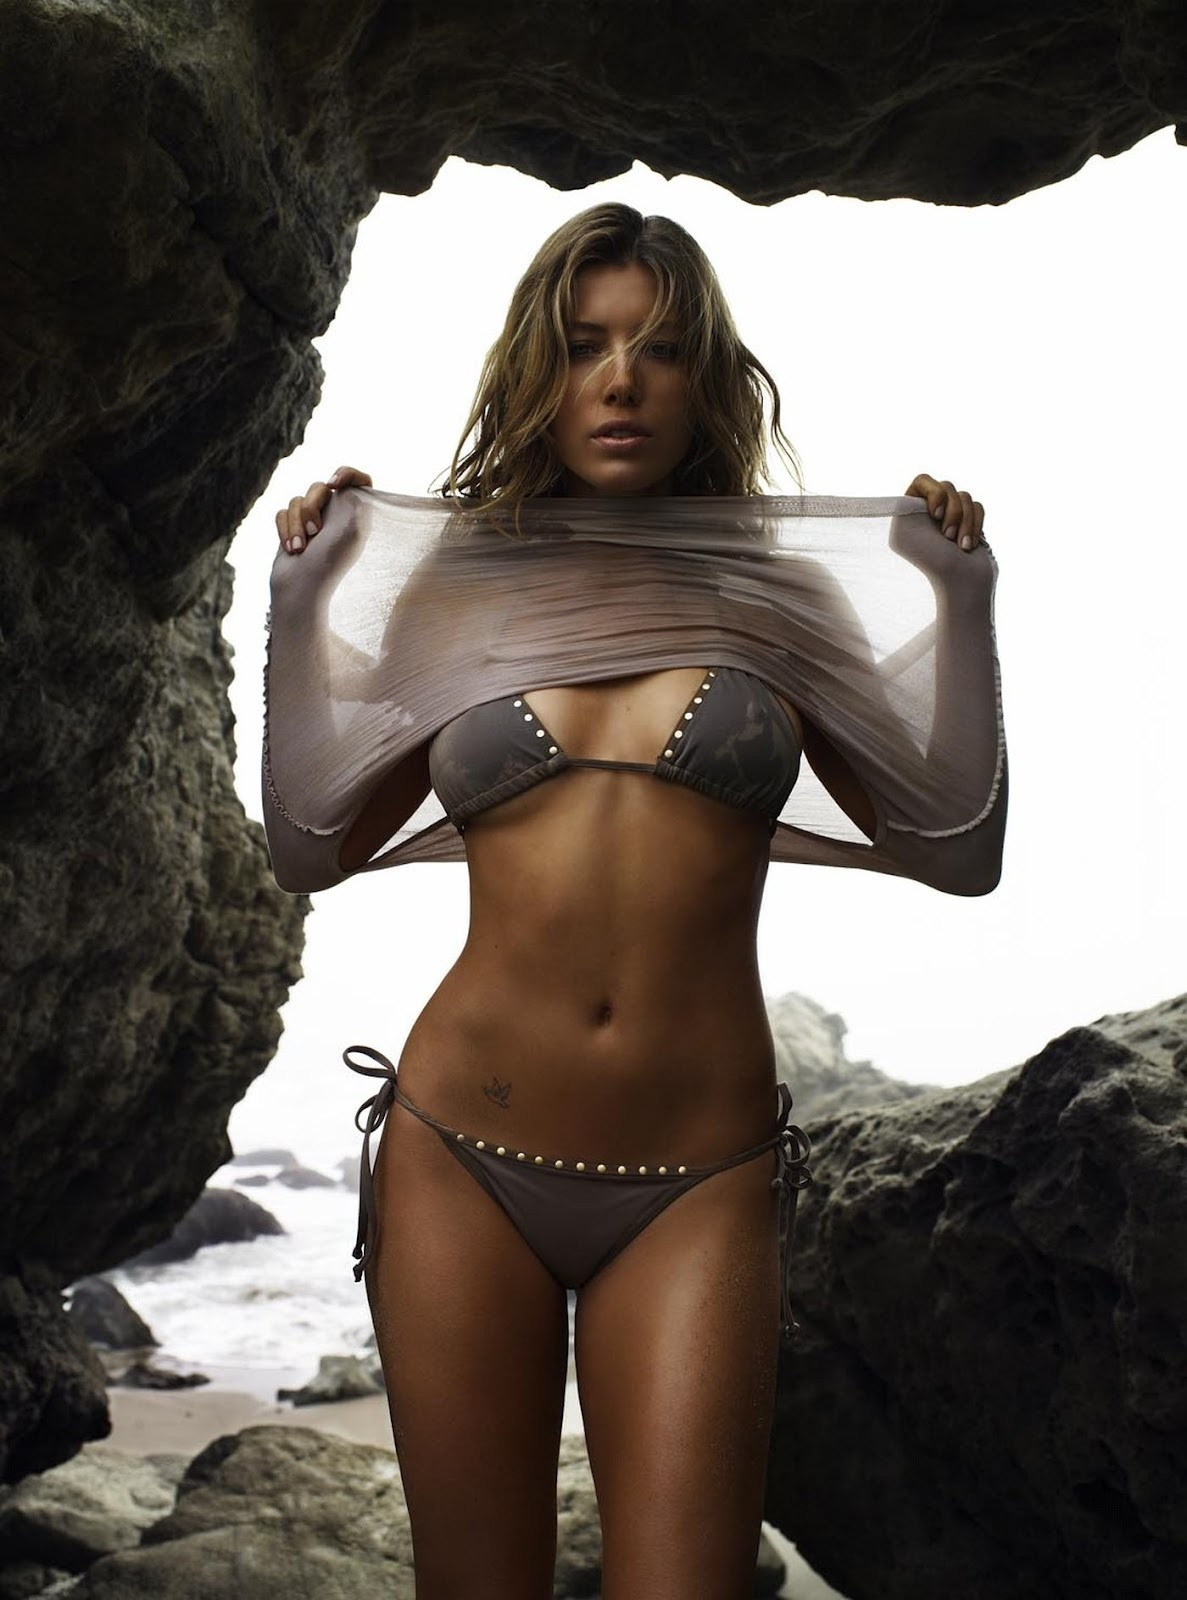 Jessica Biel Bikini Photoshoot For Gq Magazine Bikini